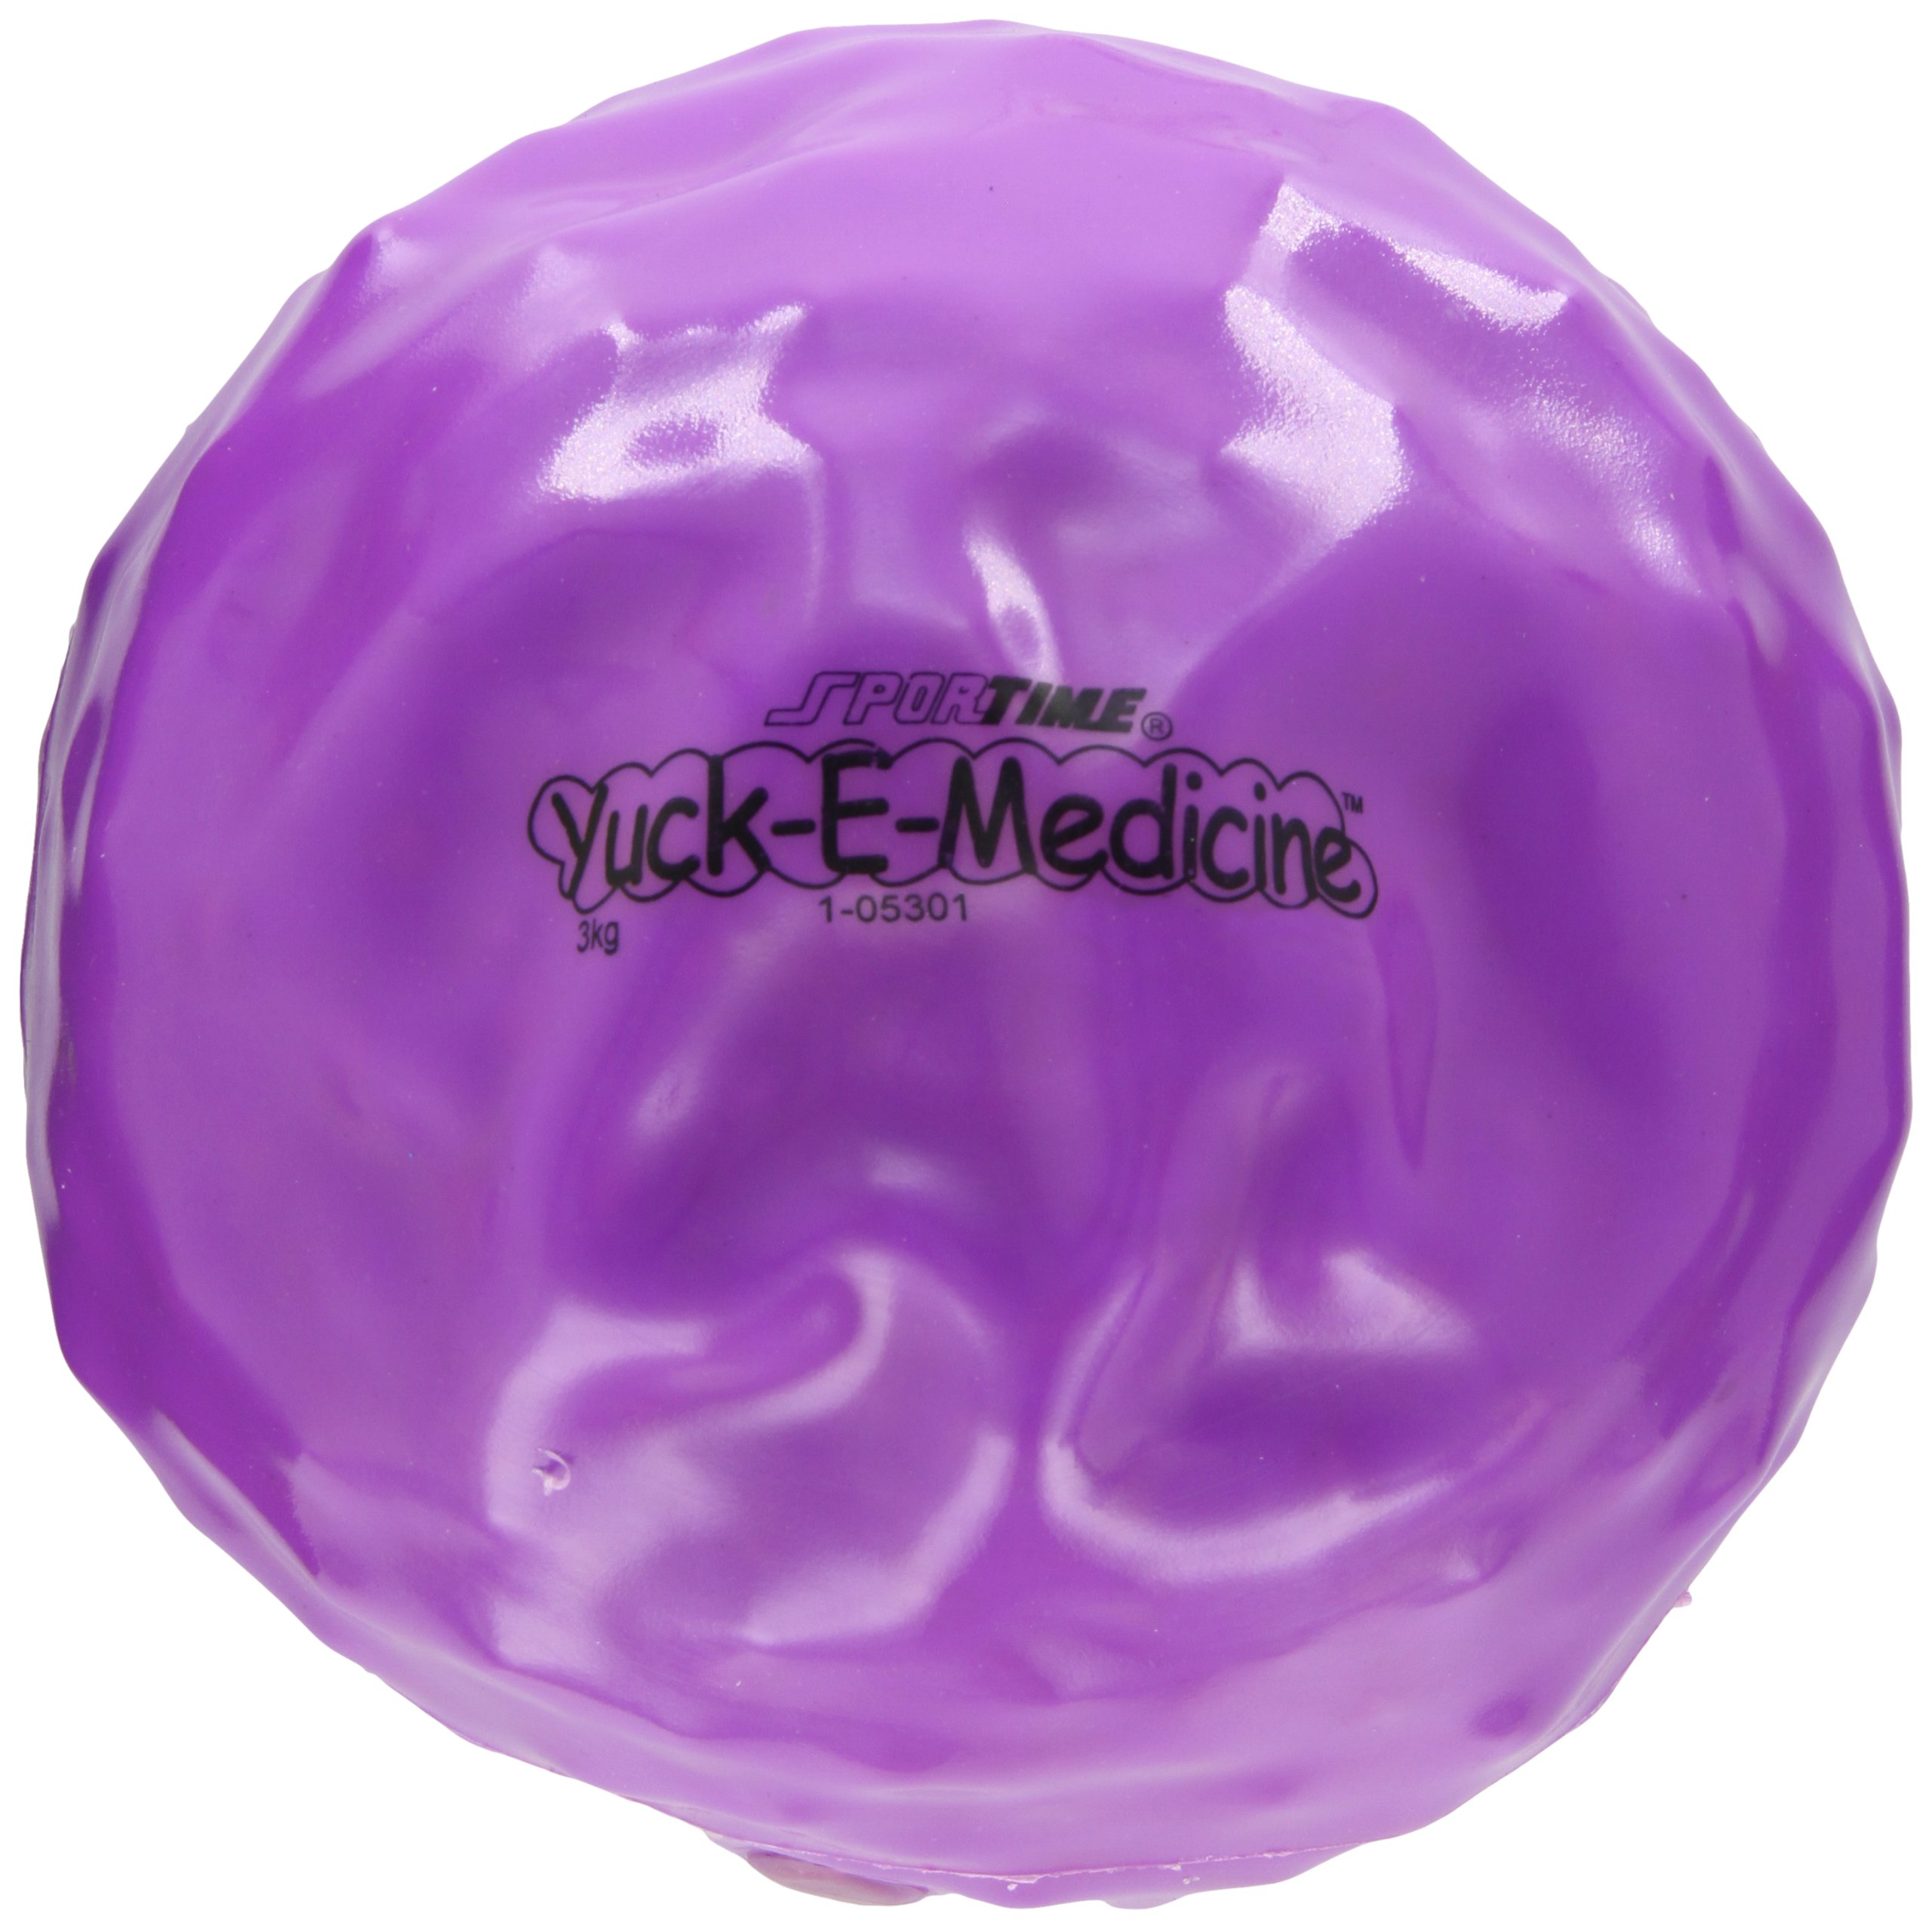 Sportime Yuck-E-Medicine Ball, 8 Inches, 6-3/5 Pounds, Violet